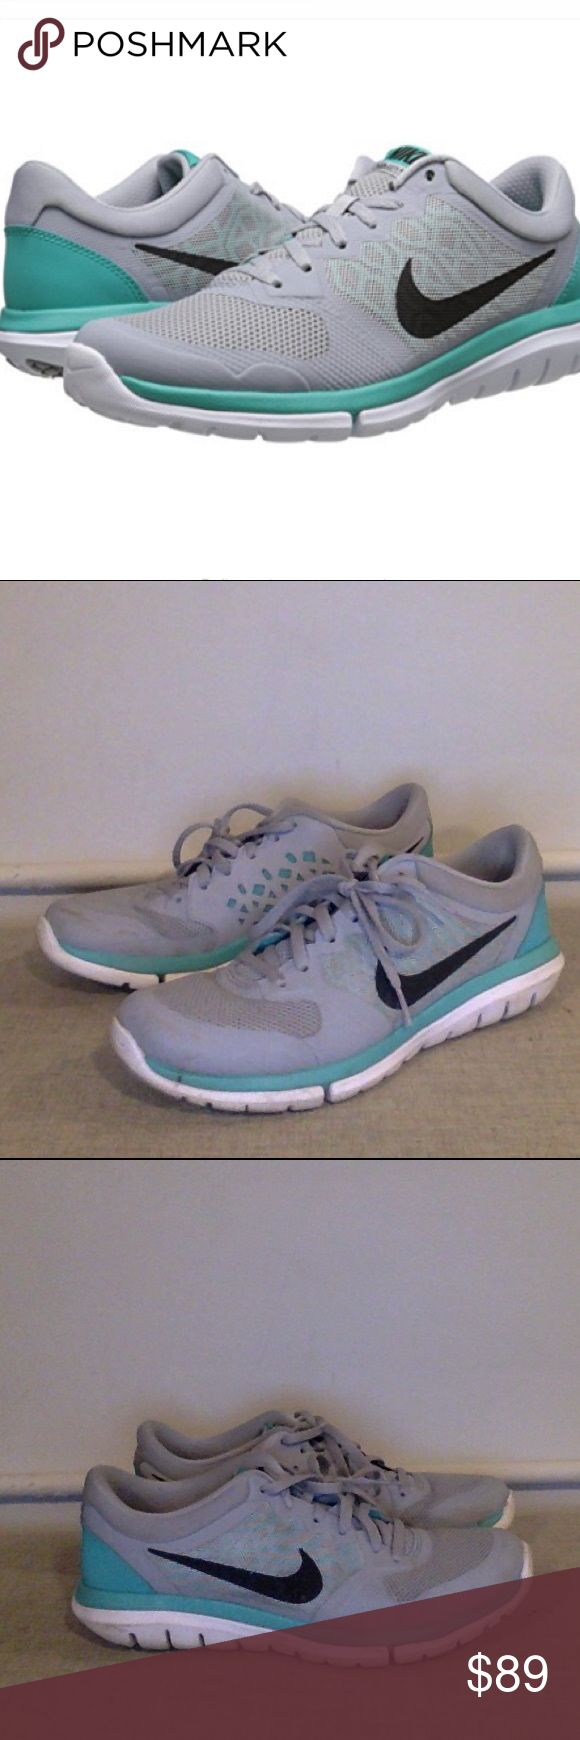 Nike Flex 7.5 Womens Running Shoes Grey Nike Flex 2015 Rn Sz 7.5 Womens Running Shoes Grey. Lightly used. Will send with extra sole support. Nike Shoes Athletic Shoes